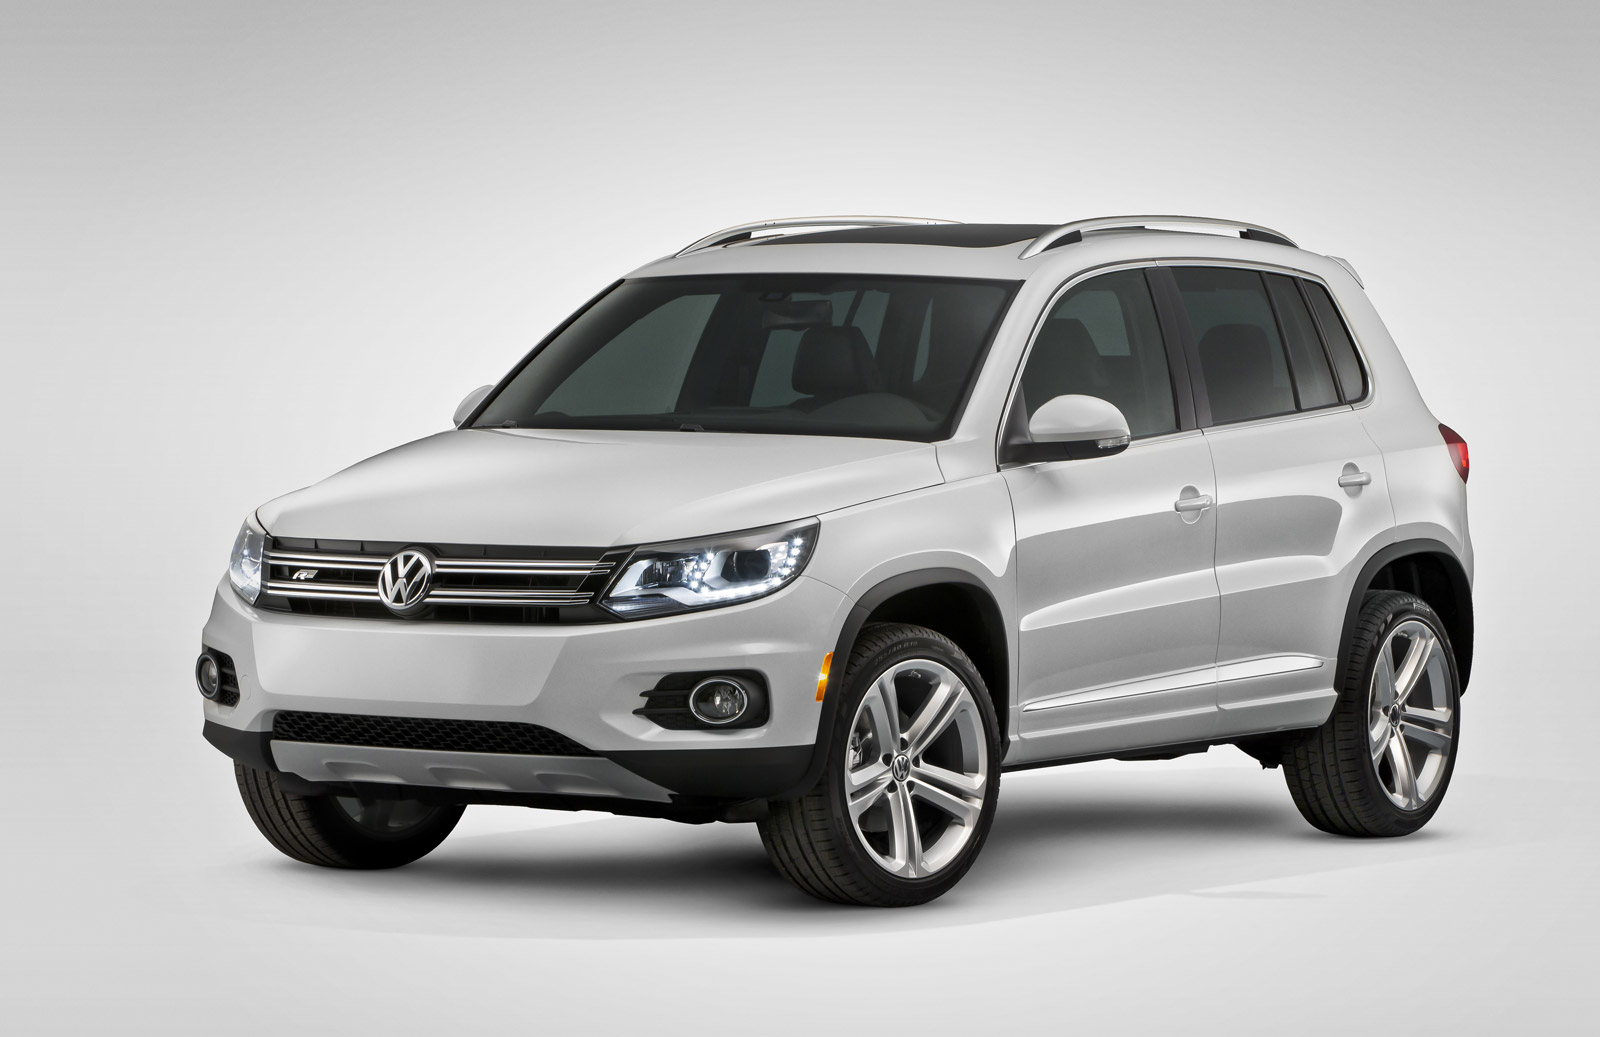 2009-2014 Volkswagen Tiguan Recalled To Fix Stalling